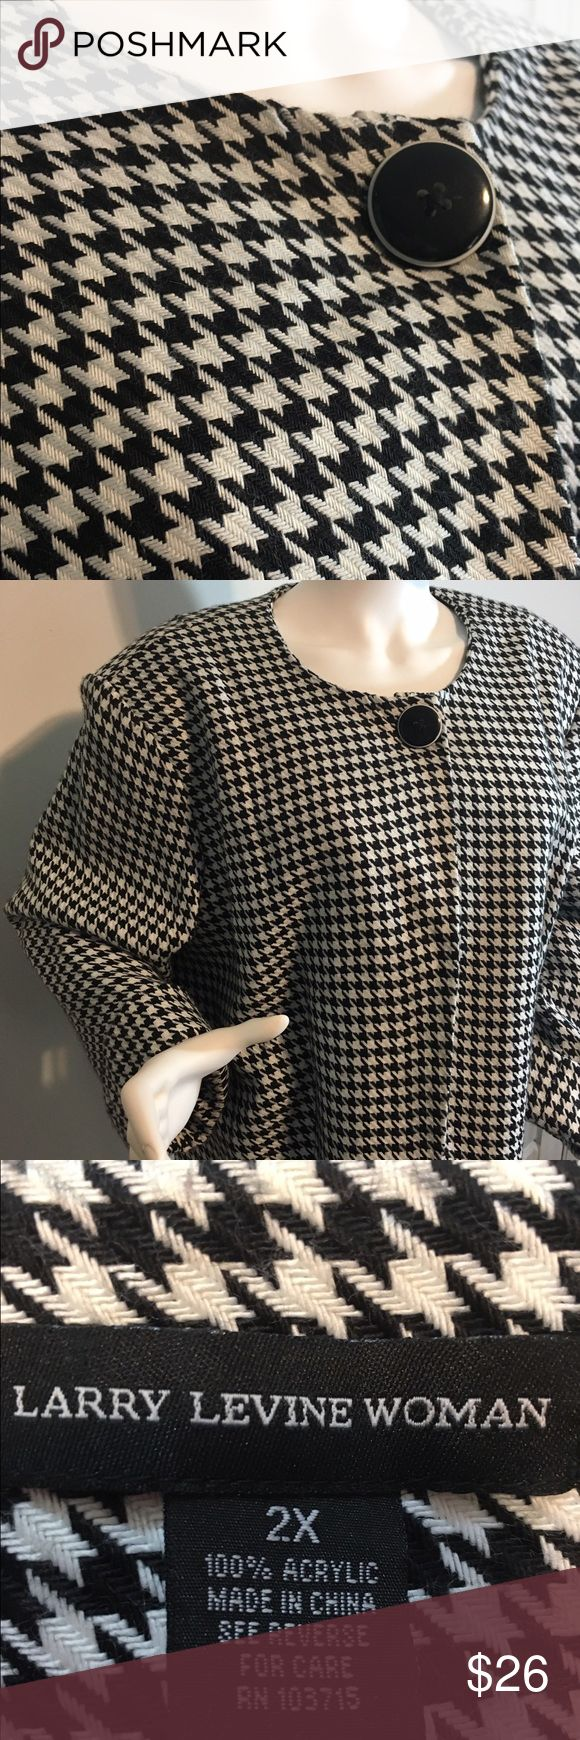 Black & White herringbone swing jacket Black & White herringbone coat, size 2x.  Fabulous condition, comes from a smoke free environment. The color is gray / silver Larry Levine Jackets & Coats